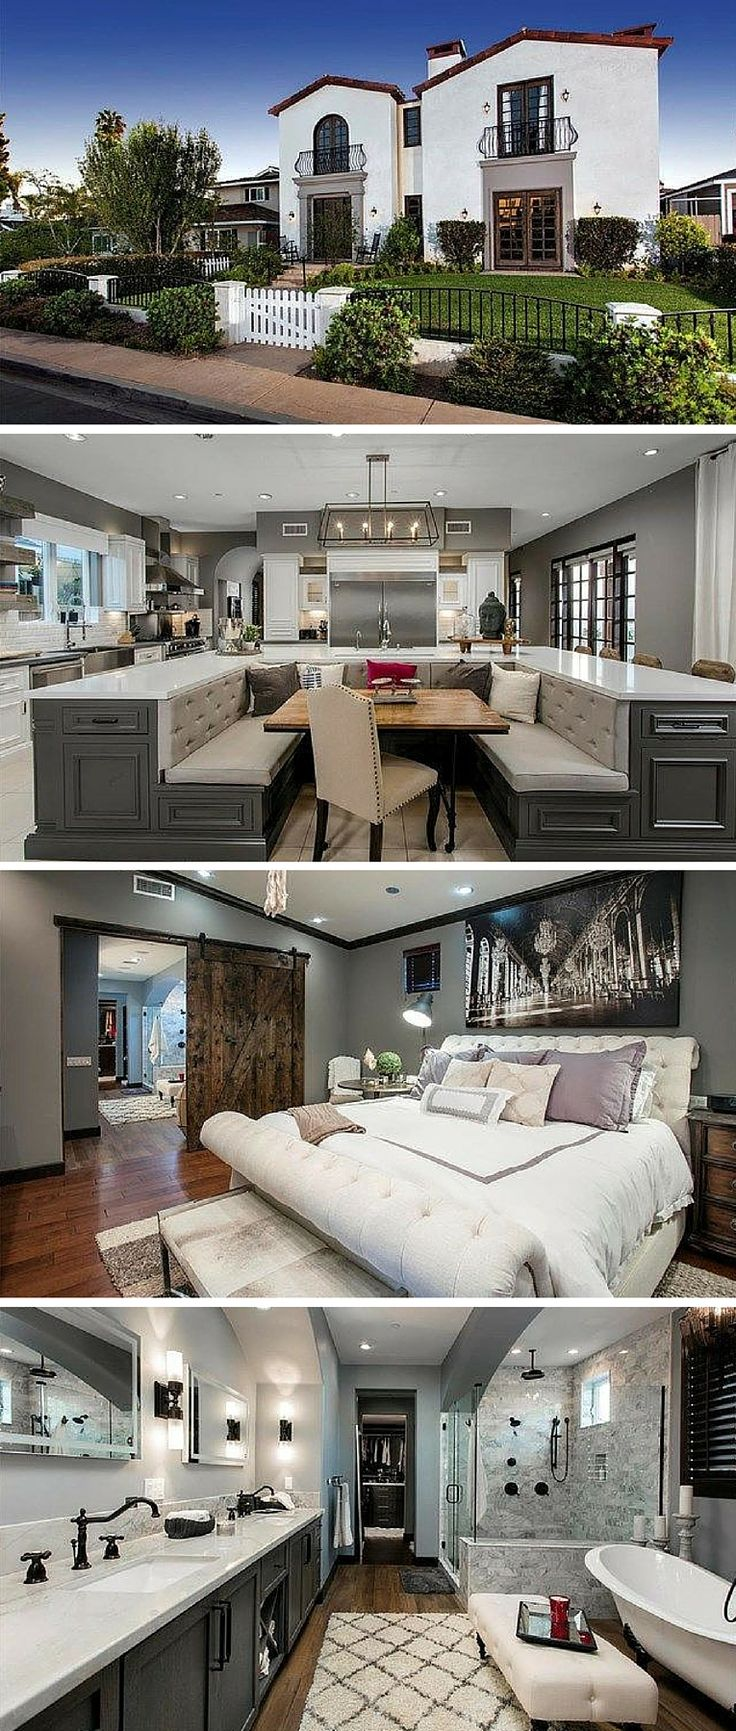 """MLB center fielder Jim Edmonds and his spouse, """"Real Housewives of Orange County"""" star Meghan King Edmonds completely remodeled their five-bedroom, 5.5-bathroom, Mediterranean Revival–style home. Now the kitchen features a U-shaped island with a built-in breakfast nook. Other luxurious aspects of the 5,077-square-foot house include french doors, hardwood floors, high ceilings, and designer lighting throughout."""